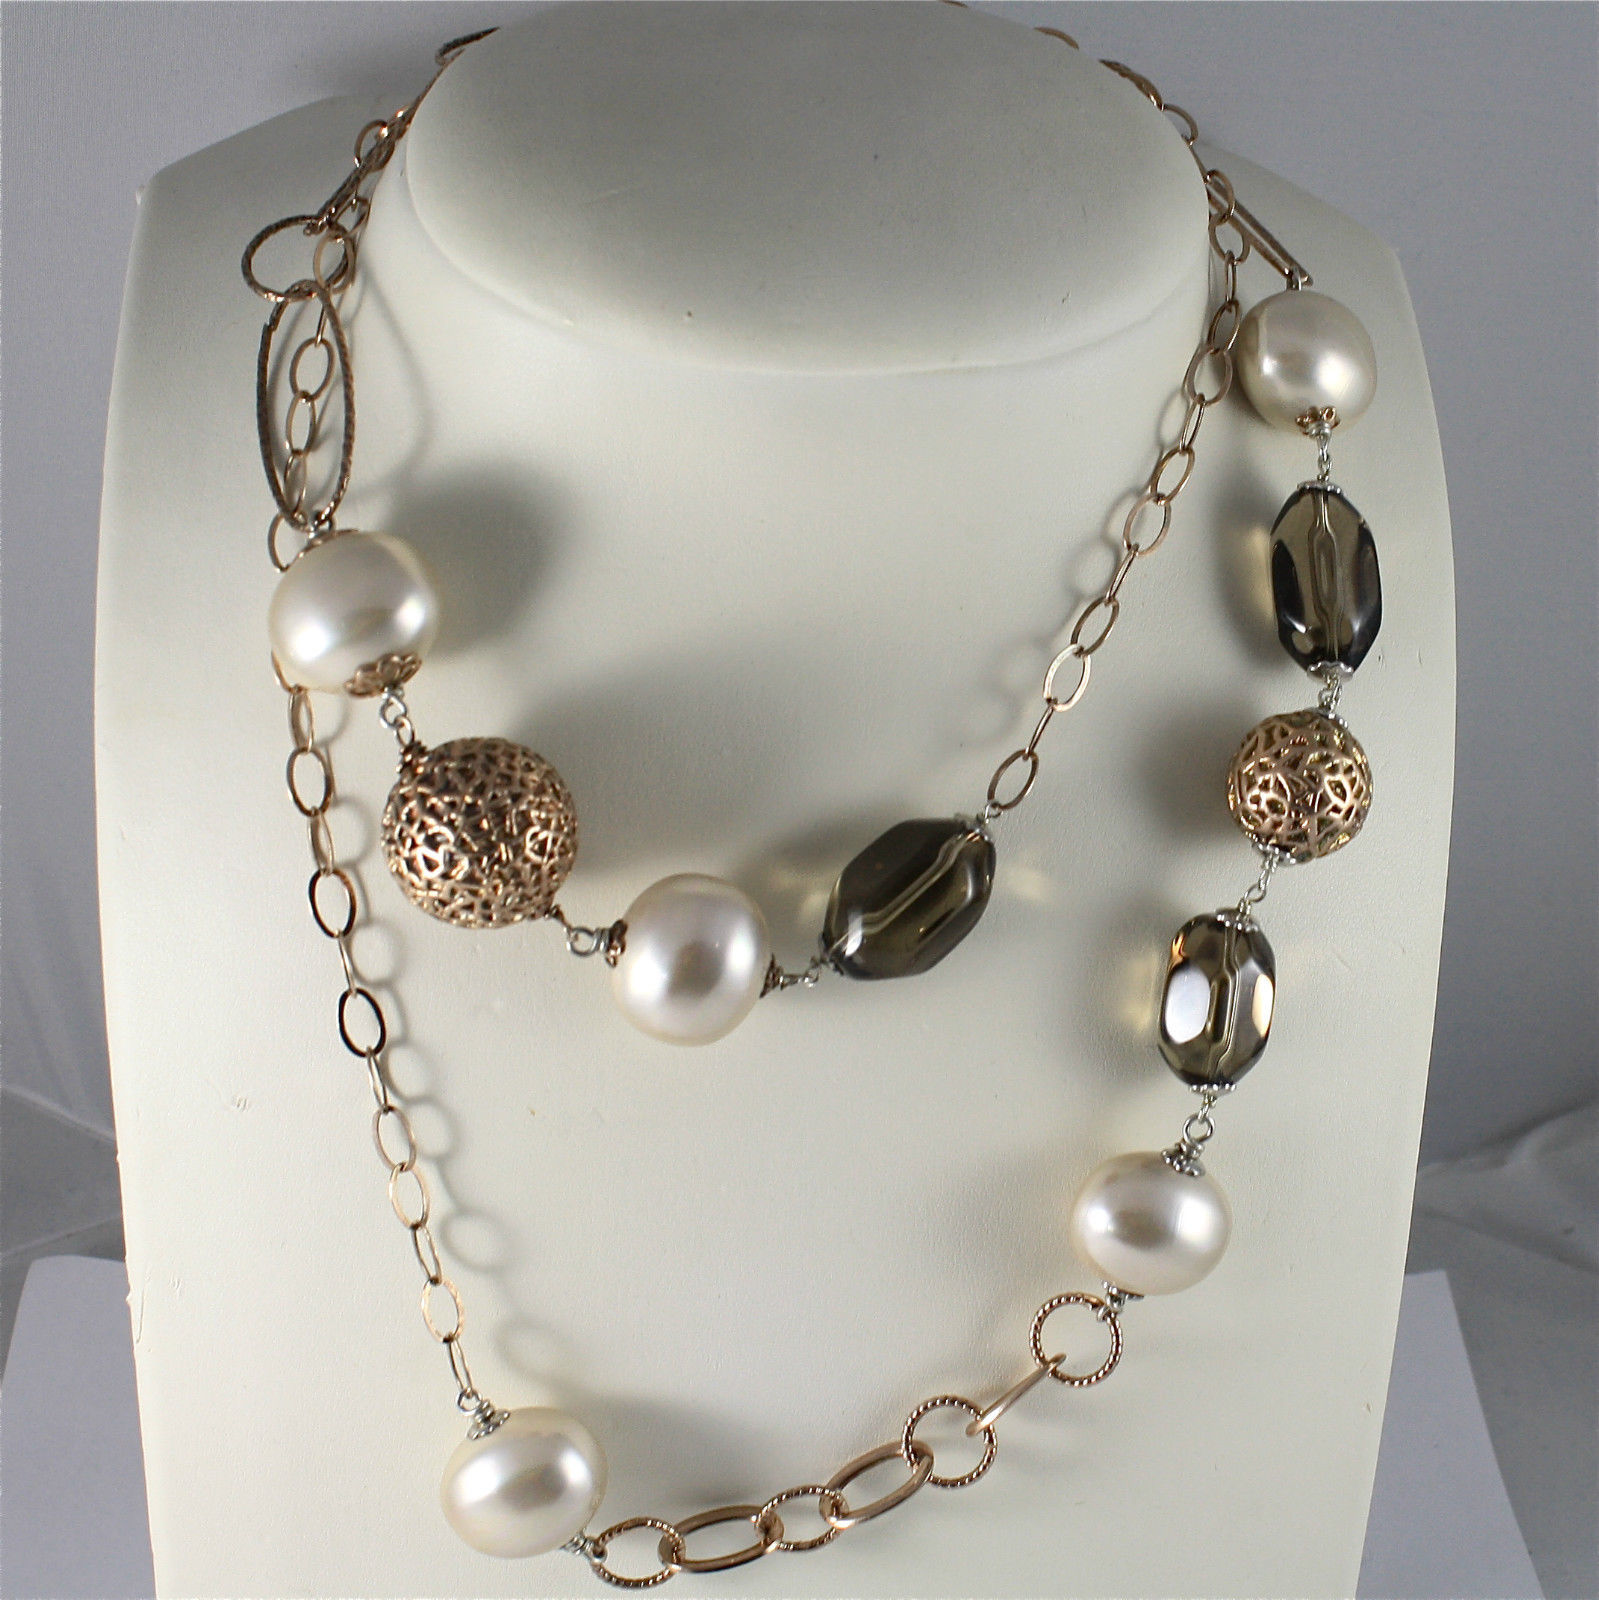 .925 SILVER NECKLACE WITH SYNTHETIC PEARLS, SMOKED CRISTALS, ROSE GOLD PLATED